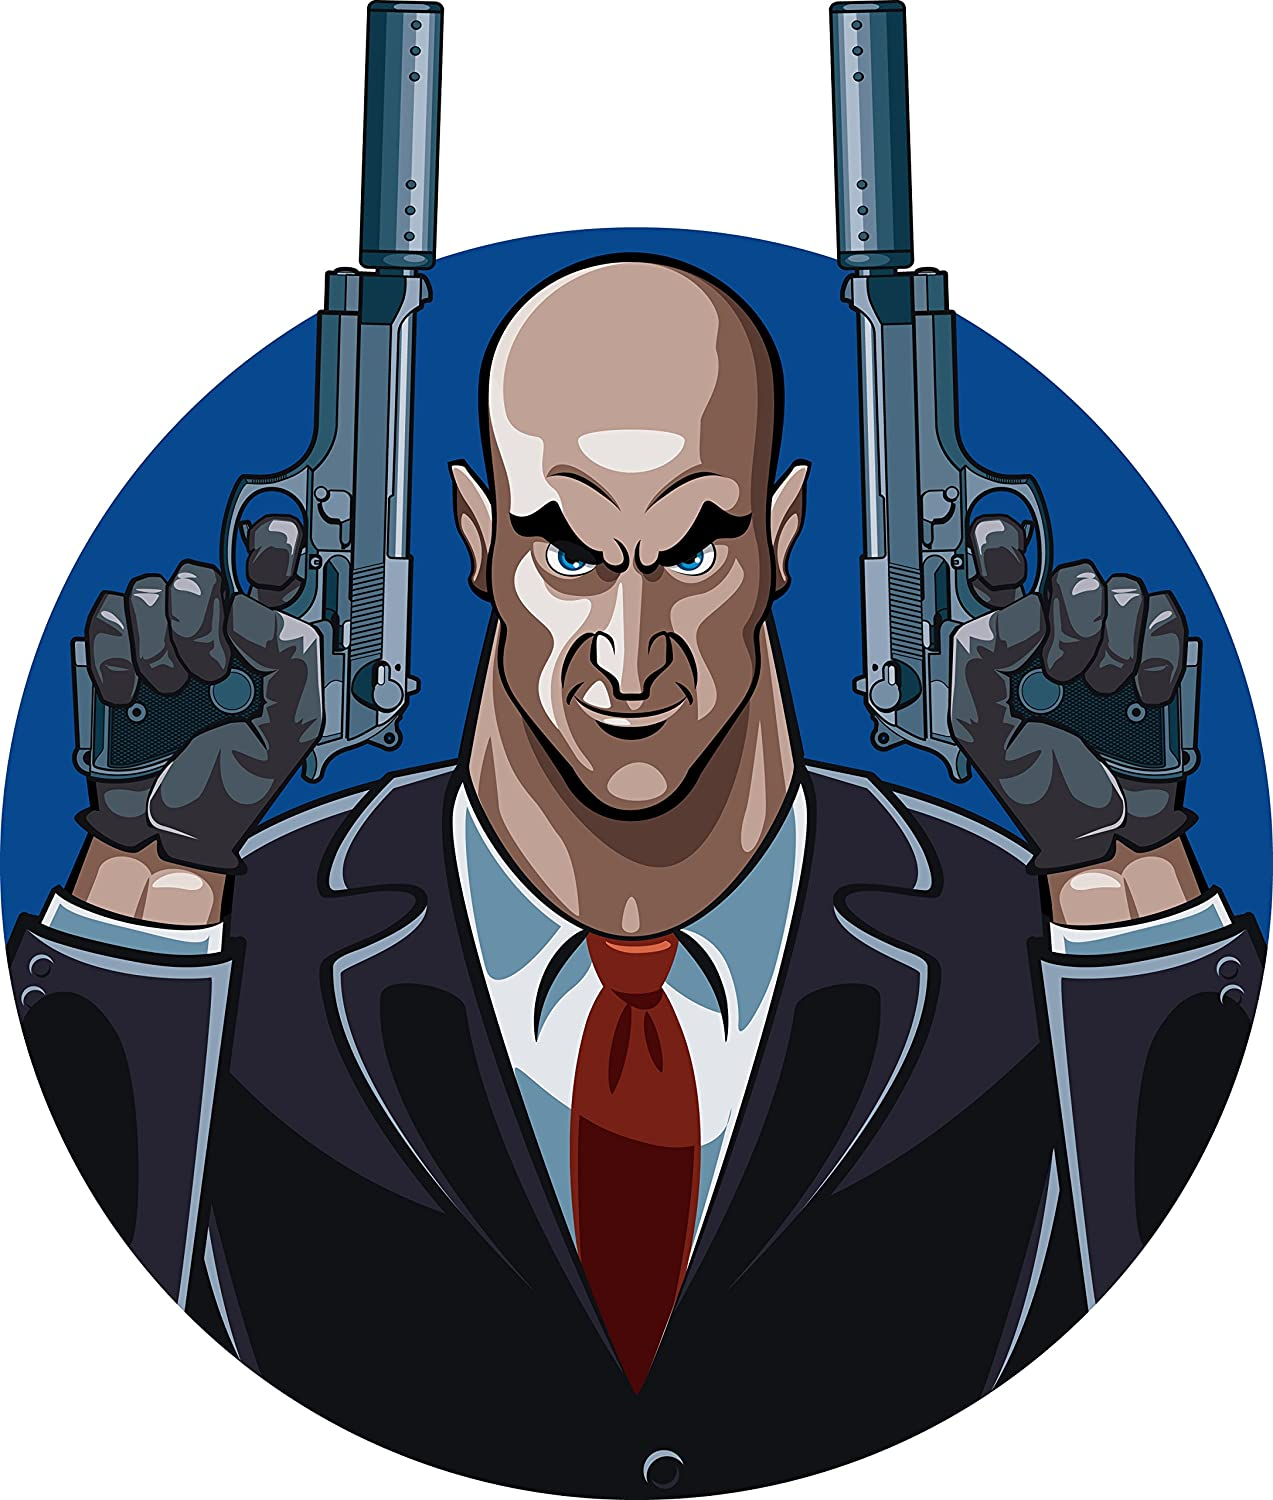 Amazon Com Bald Hitman In Business Suit And Two Silent Guns